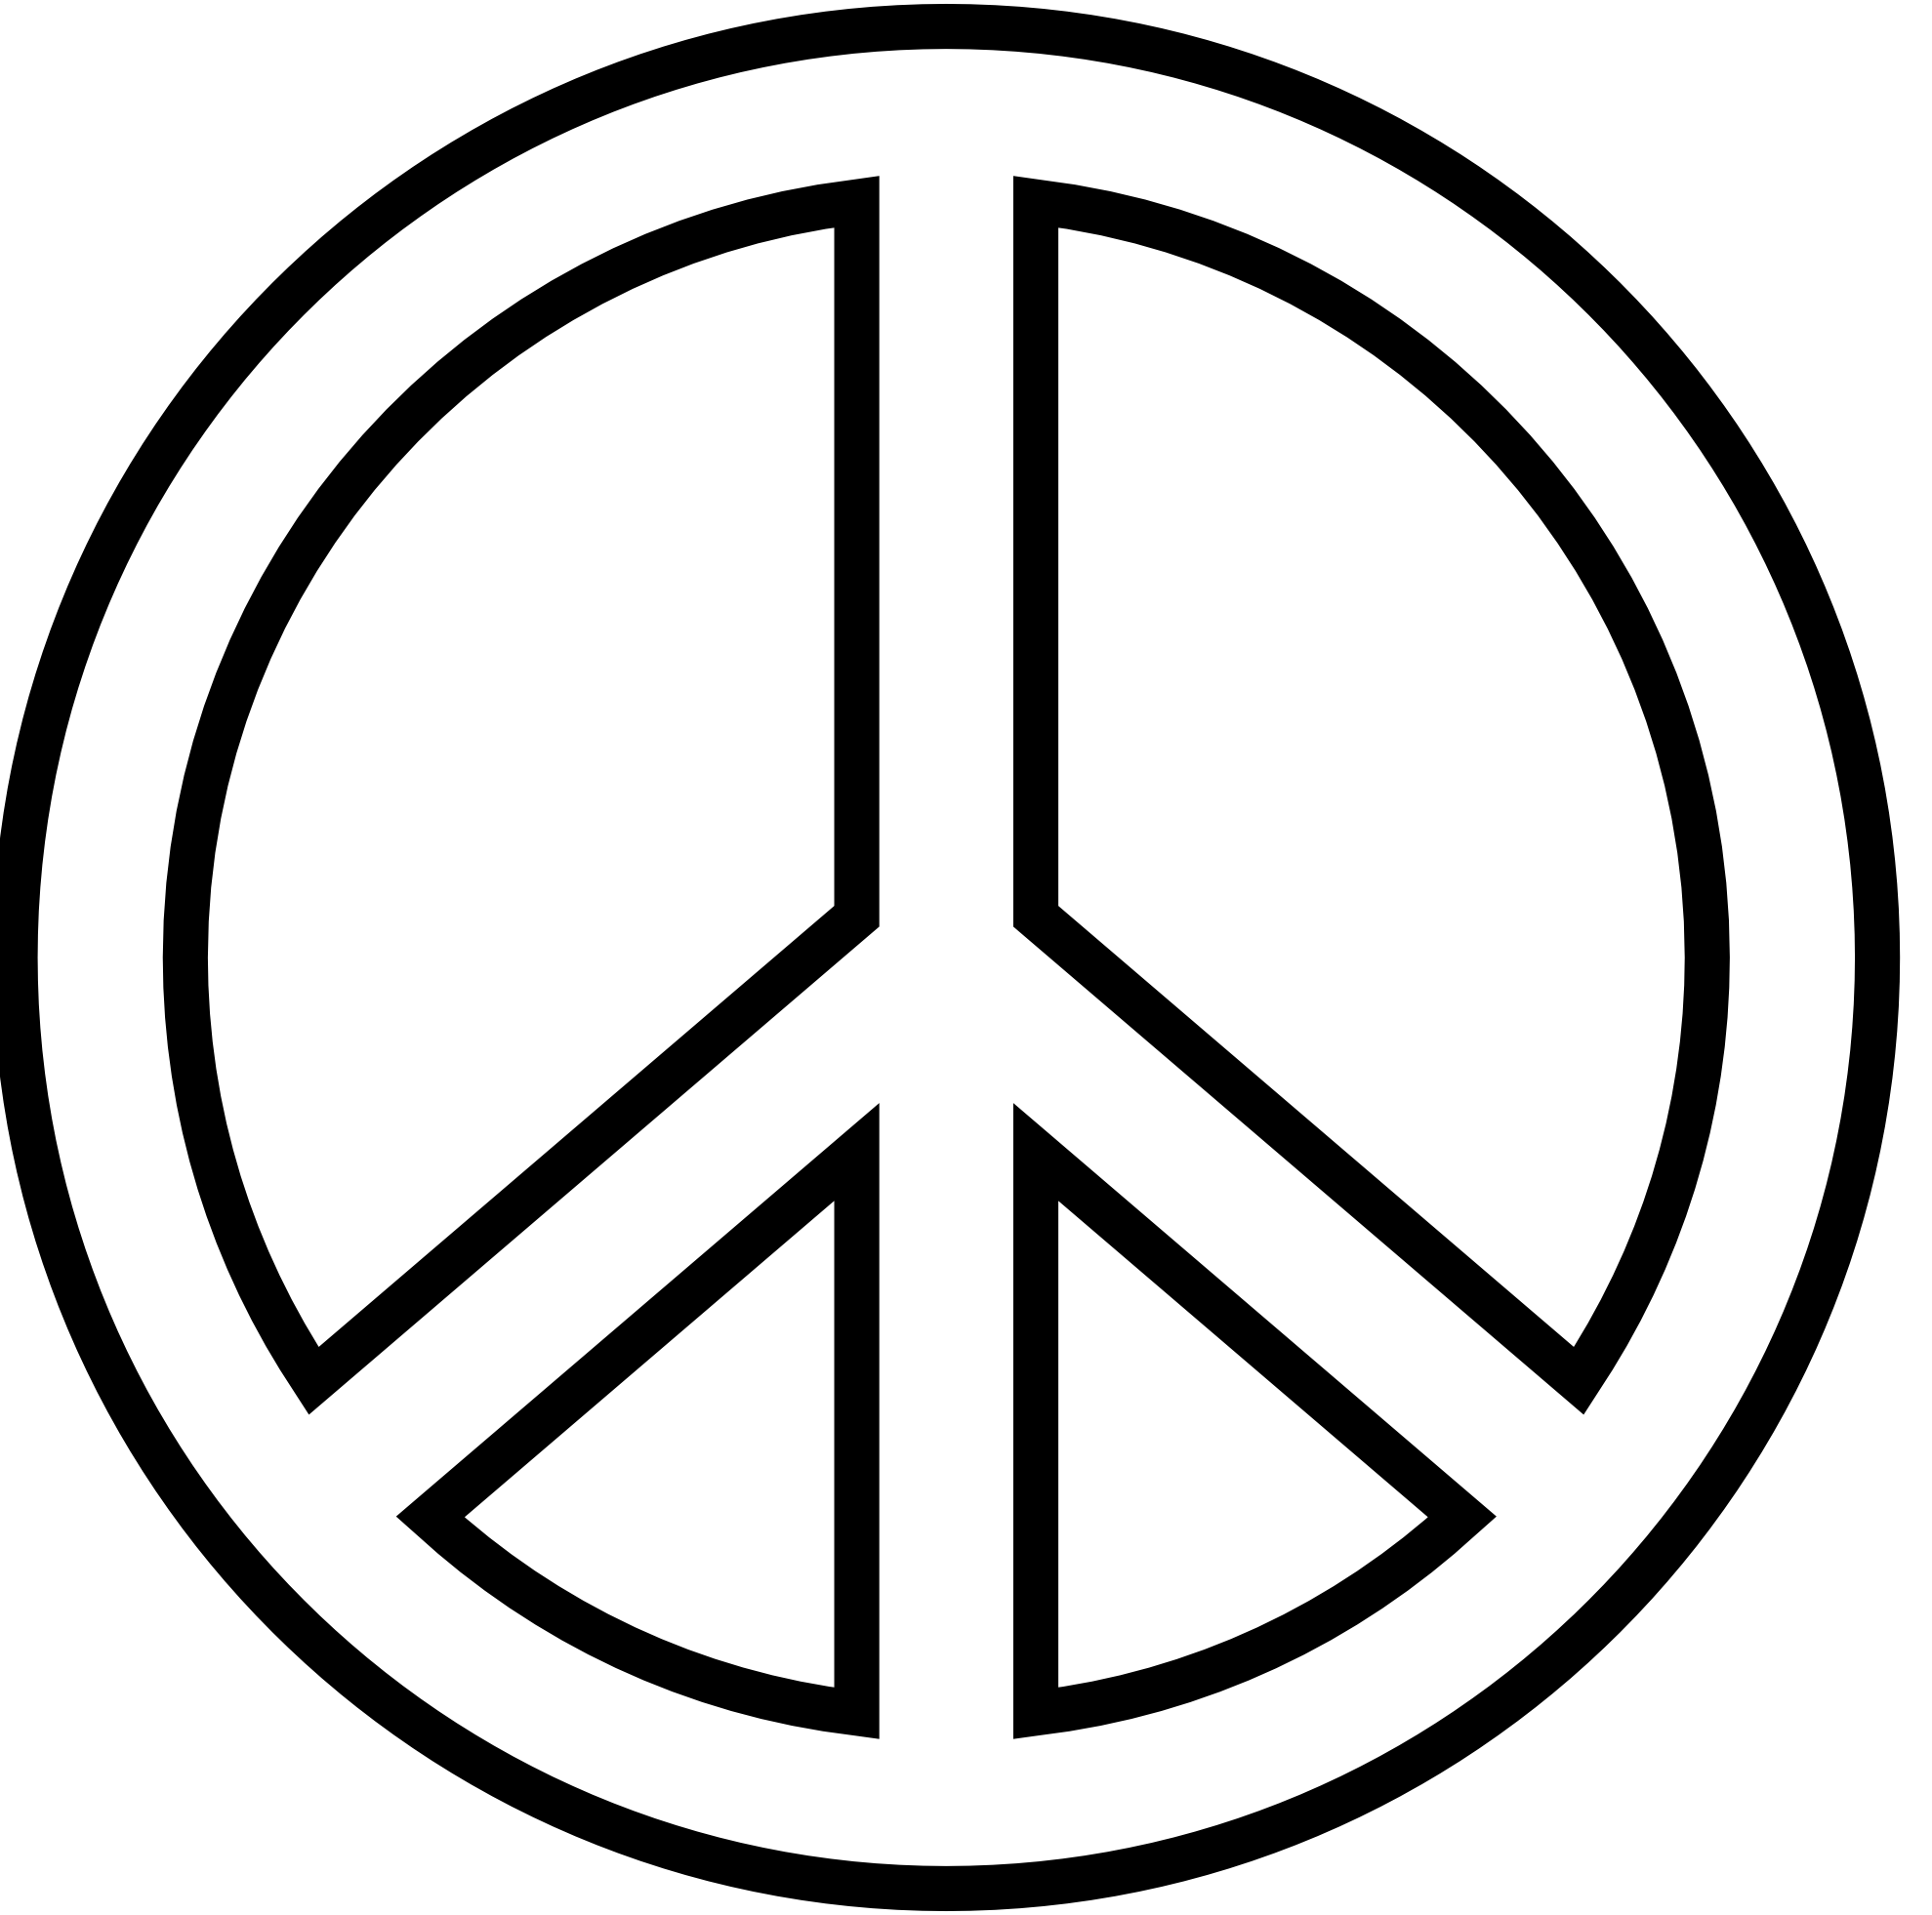 Words clipart peace. To the hippy van